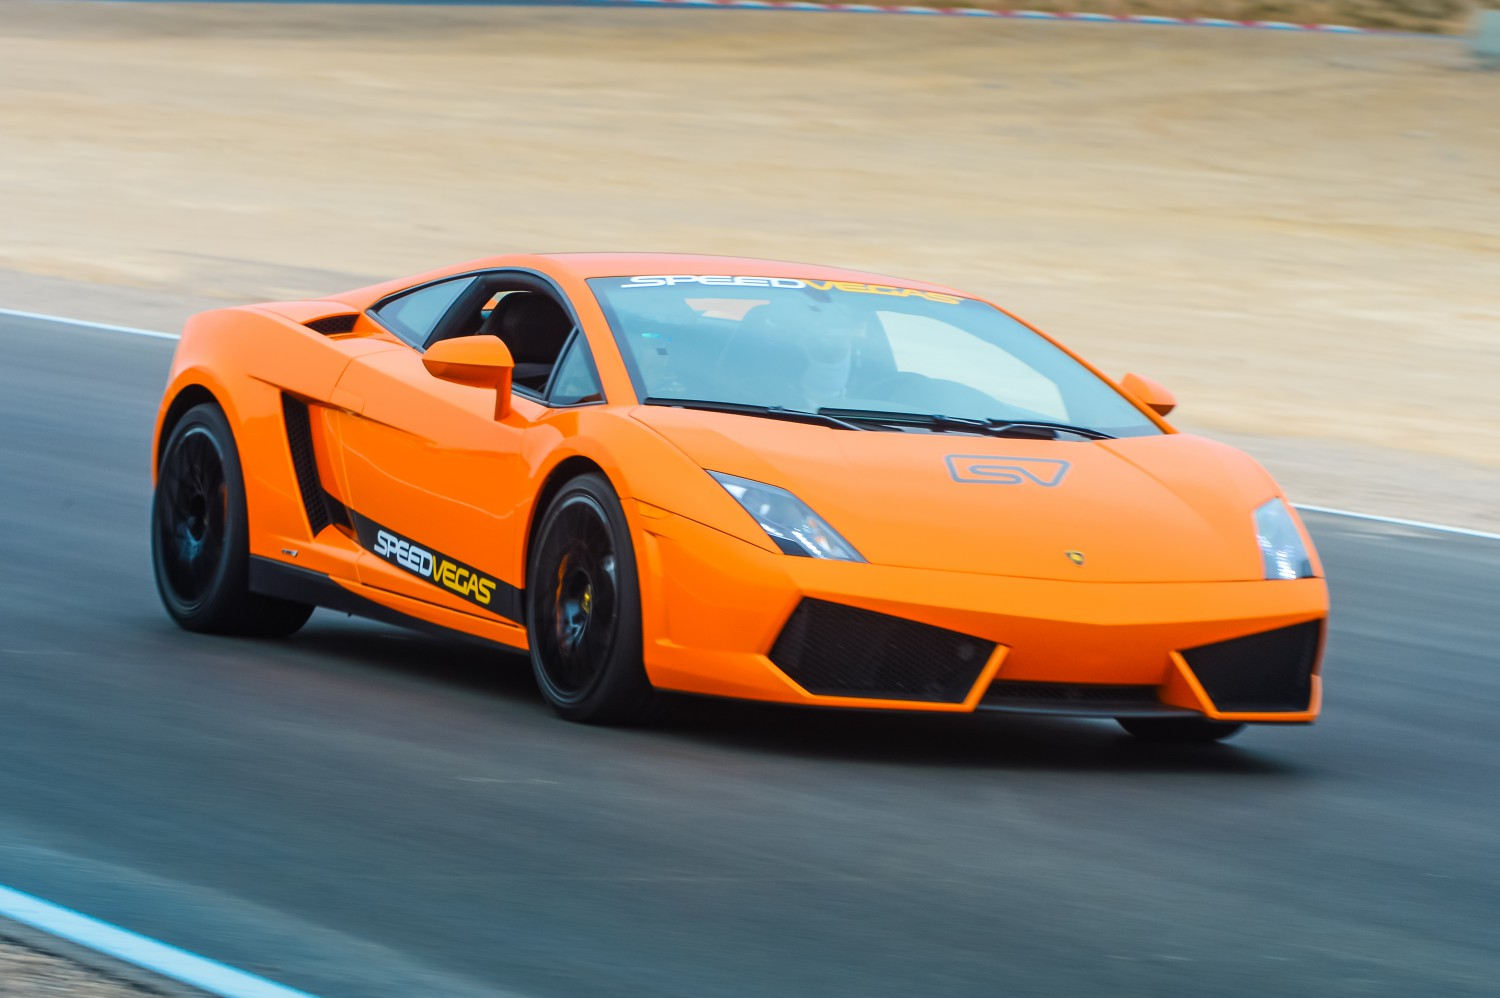 When You Buy A Lamborghini Driving Experience From SPEEDVEGAS, Youu0027ll  Experience The Thrill Of Driving The Lamborghini Gallardo On A Racetrack  That Was ...